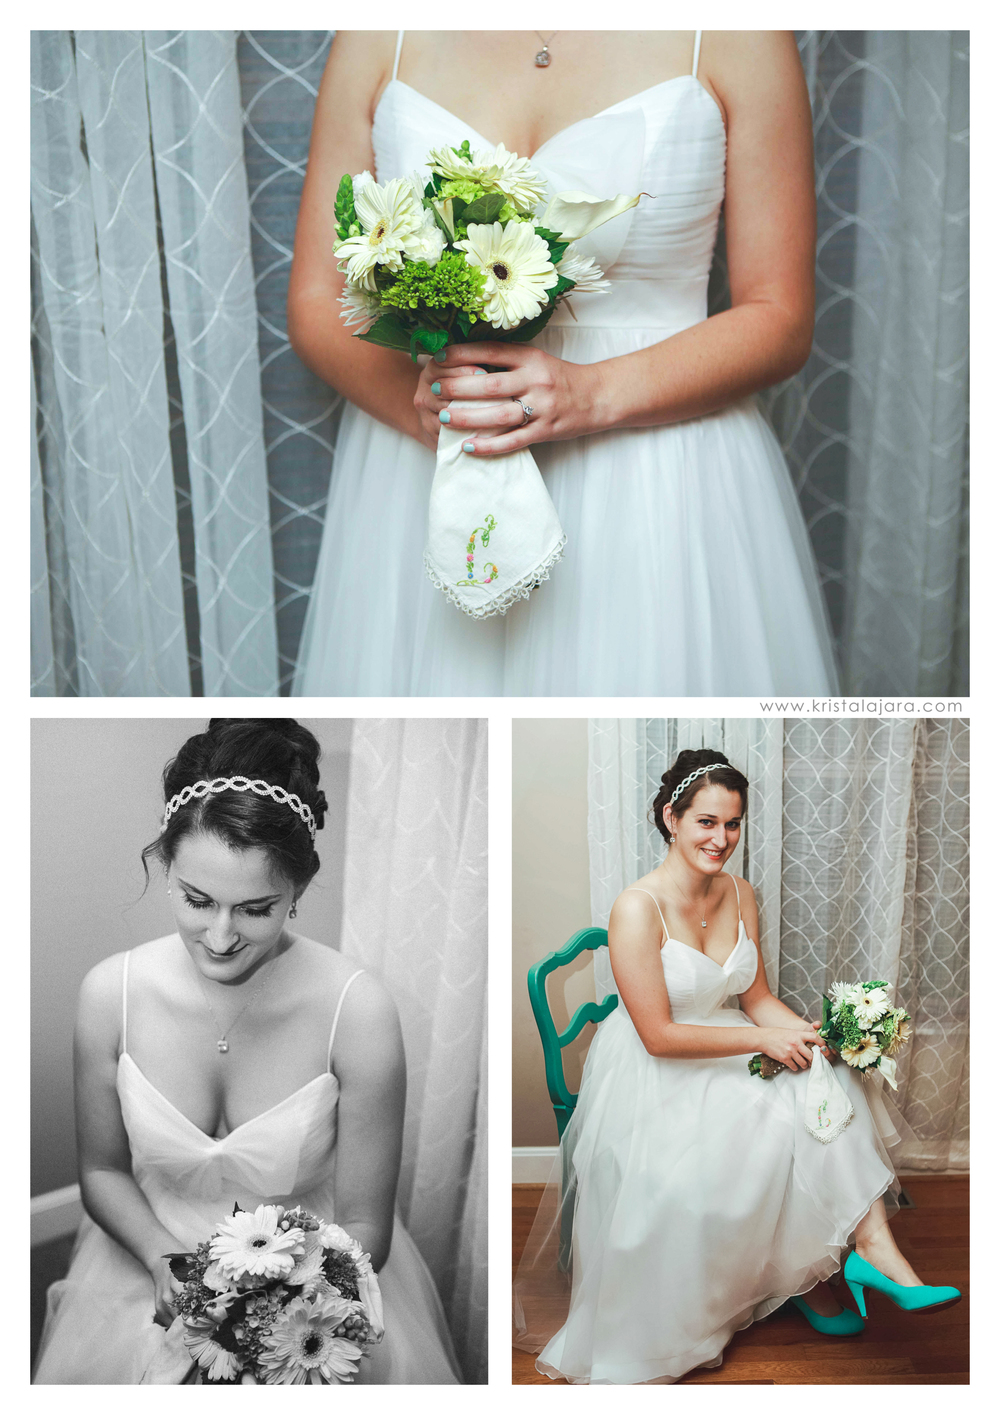 Deanna + Austin Wedding in Charleston, WV | www.kristalajara.com